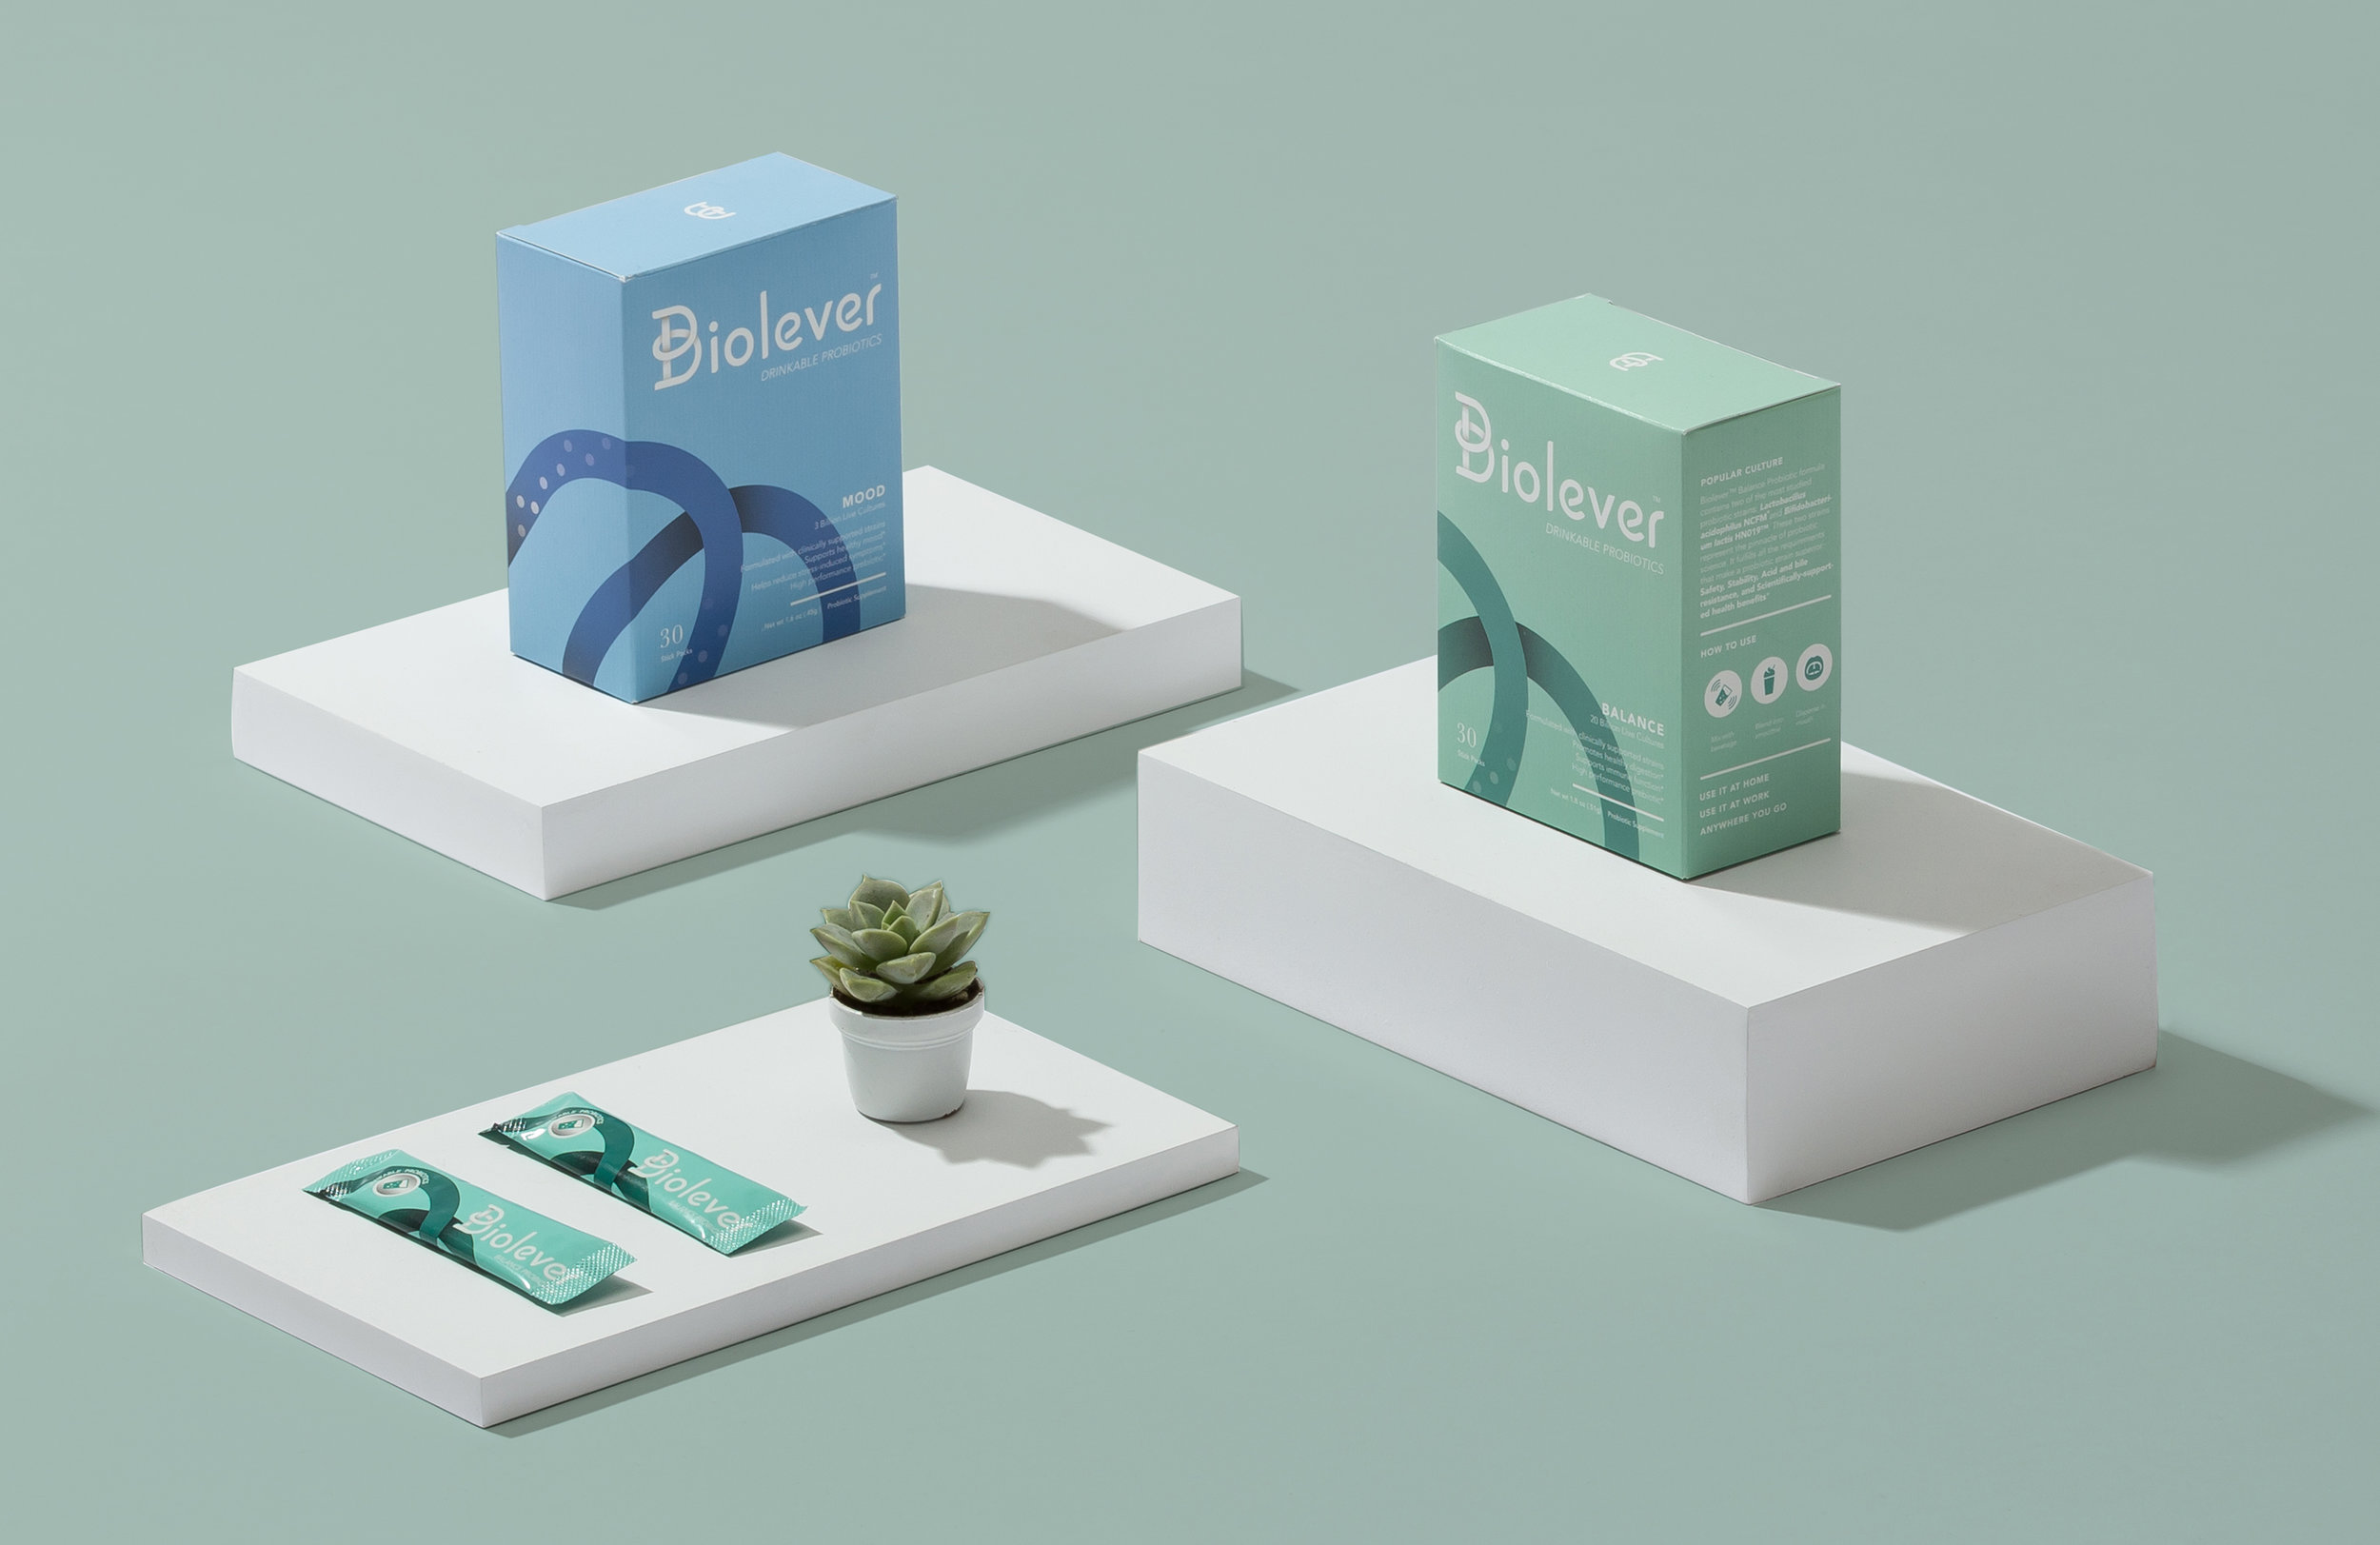 Biolever Probiotic Drinks / ReBranding